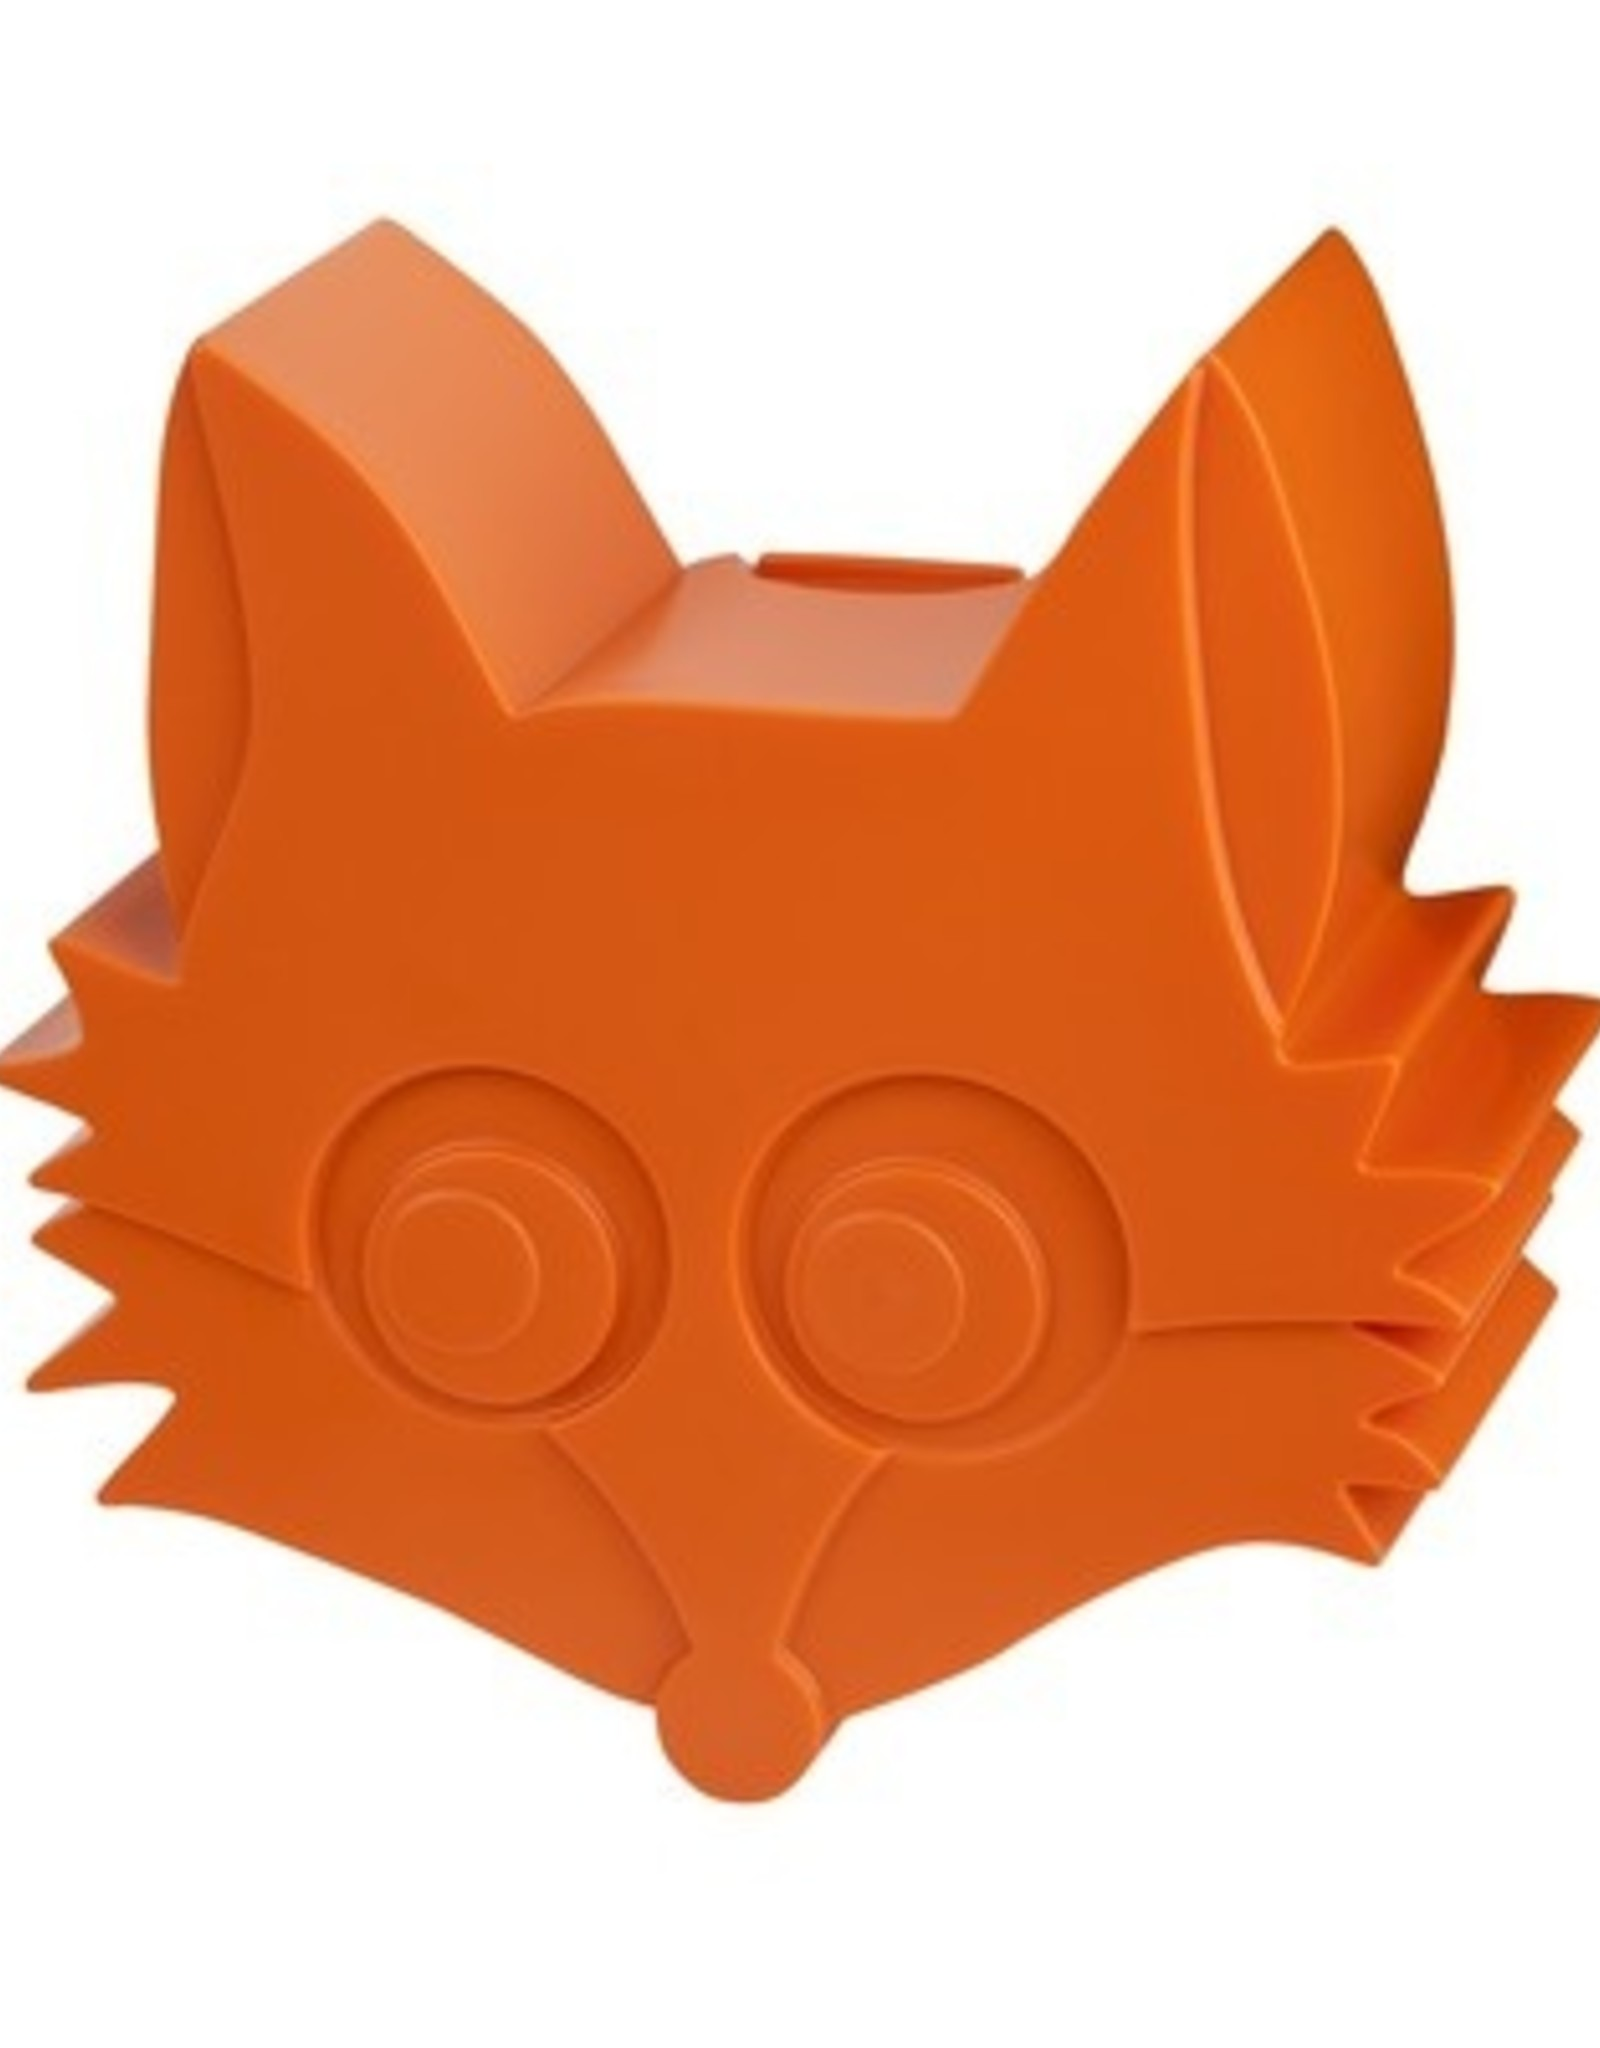 BLAFRE Blafre - Snack box - Fox - Orange